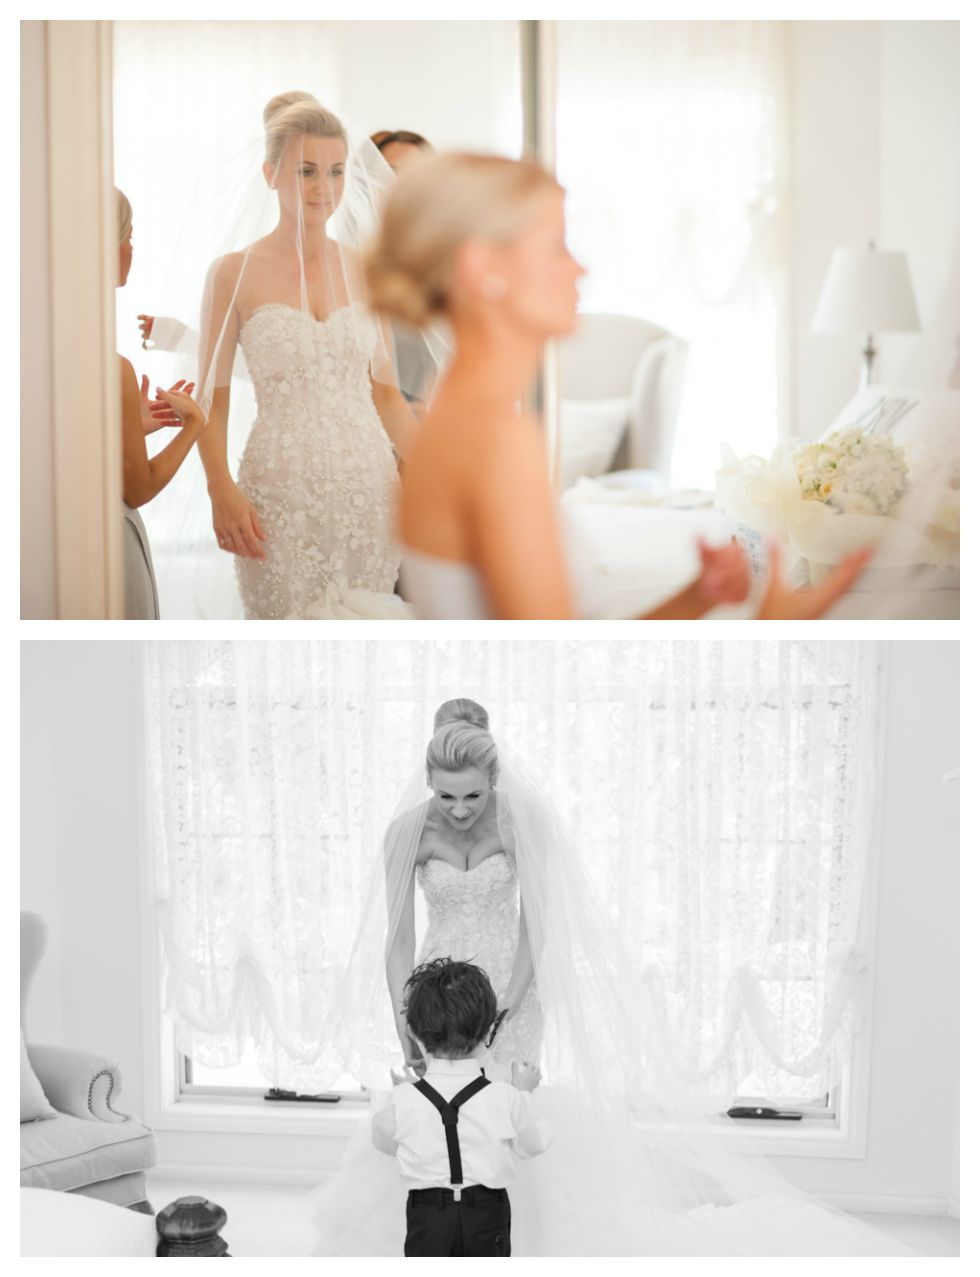 steven khalil, wedding veil, melbourne wedding photographer